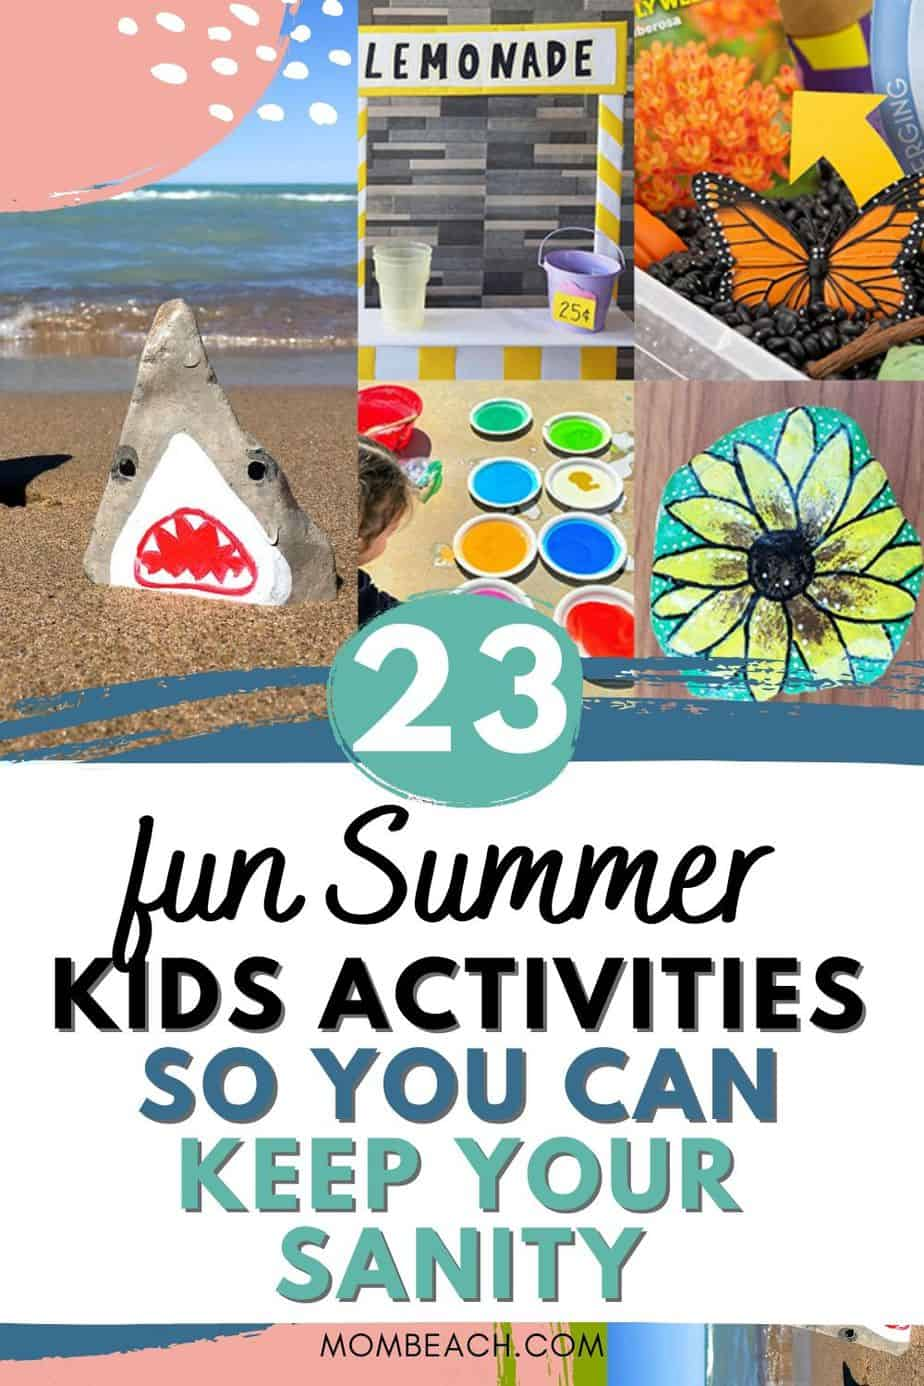 These outdoor and at home kids Summer activities are great for boys and girls. There are easy and fun DIY crafts and learning activities too. There are even water activities and other creative ideas to have fun in the Summer! #summerkidsactivities #outdoorsummerkidsactivities #athomesummerkidsactivities #summerkidscrafts #funsummerkidsactivities